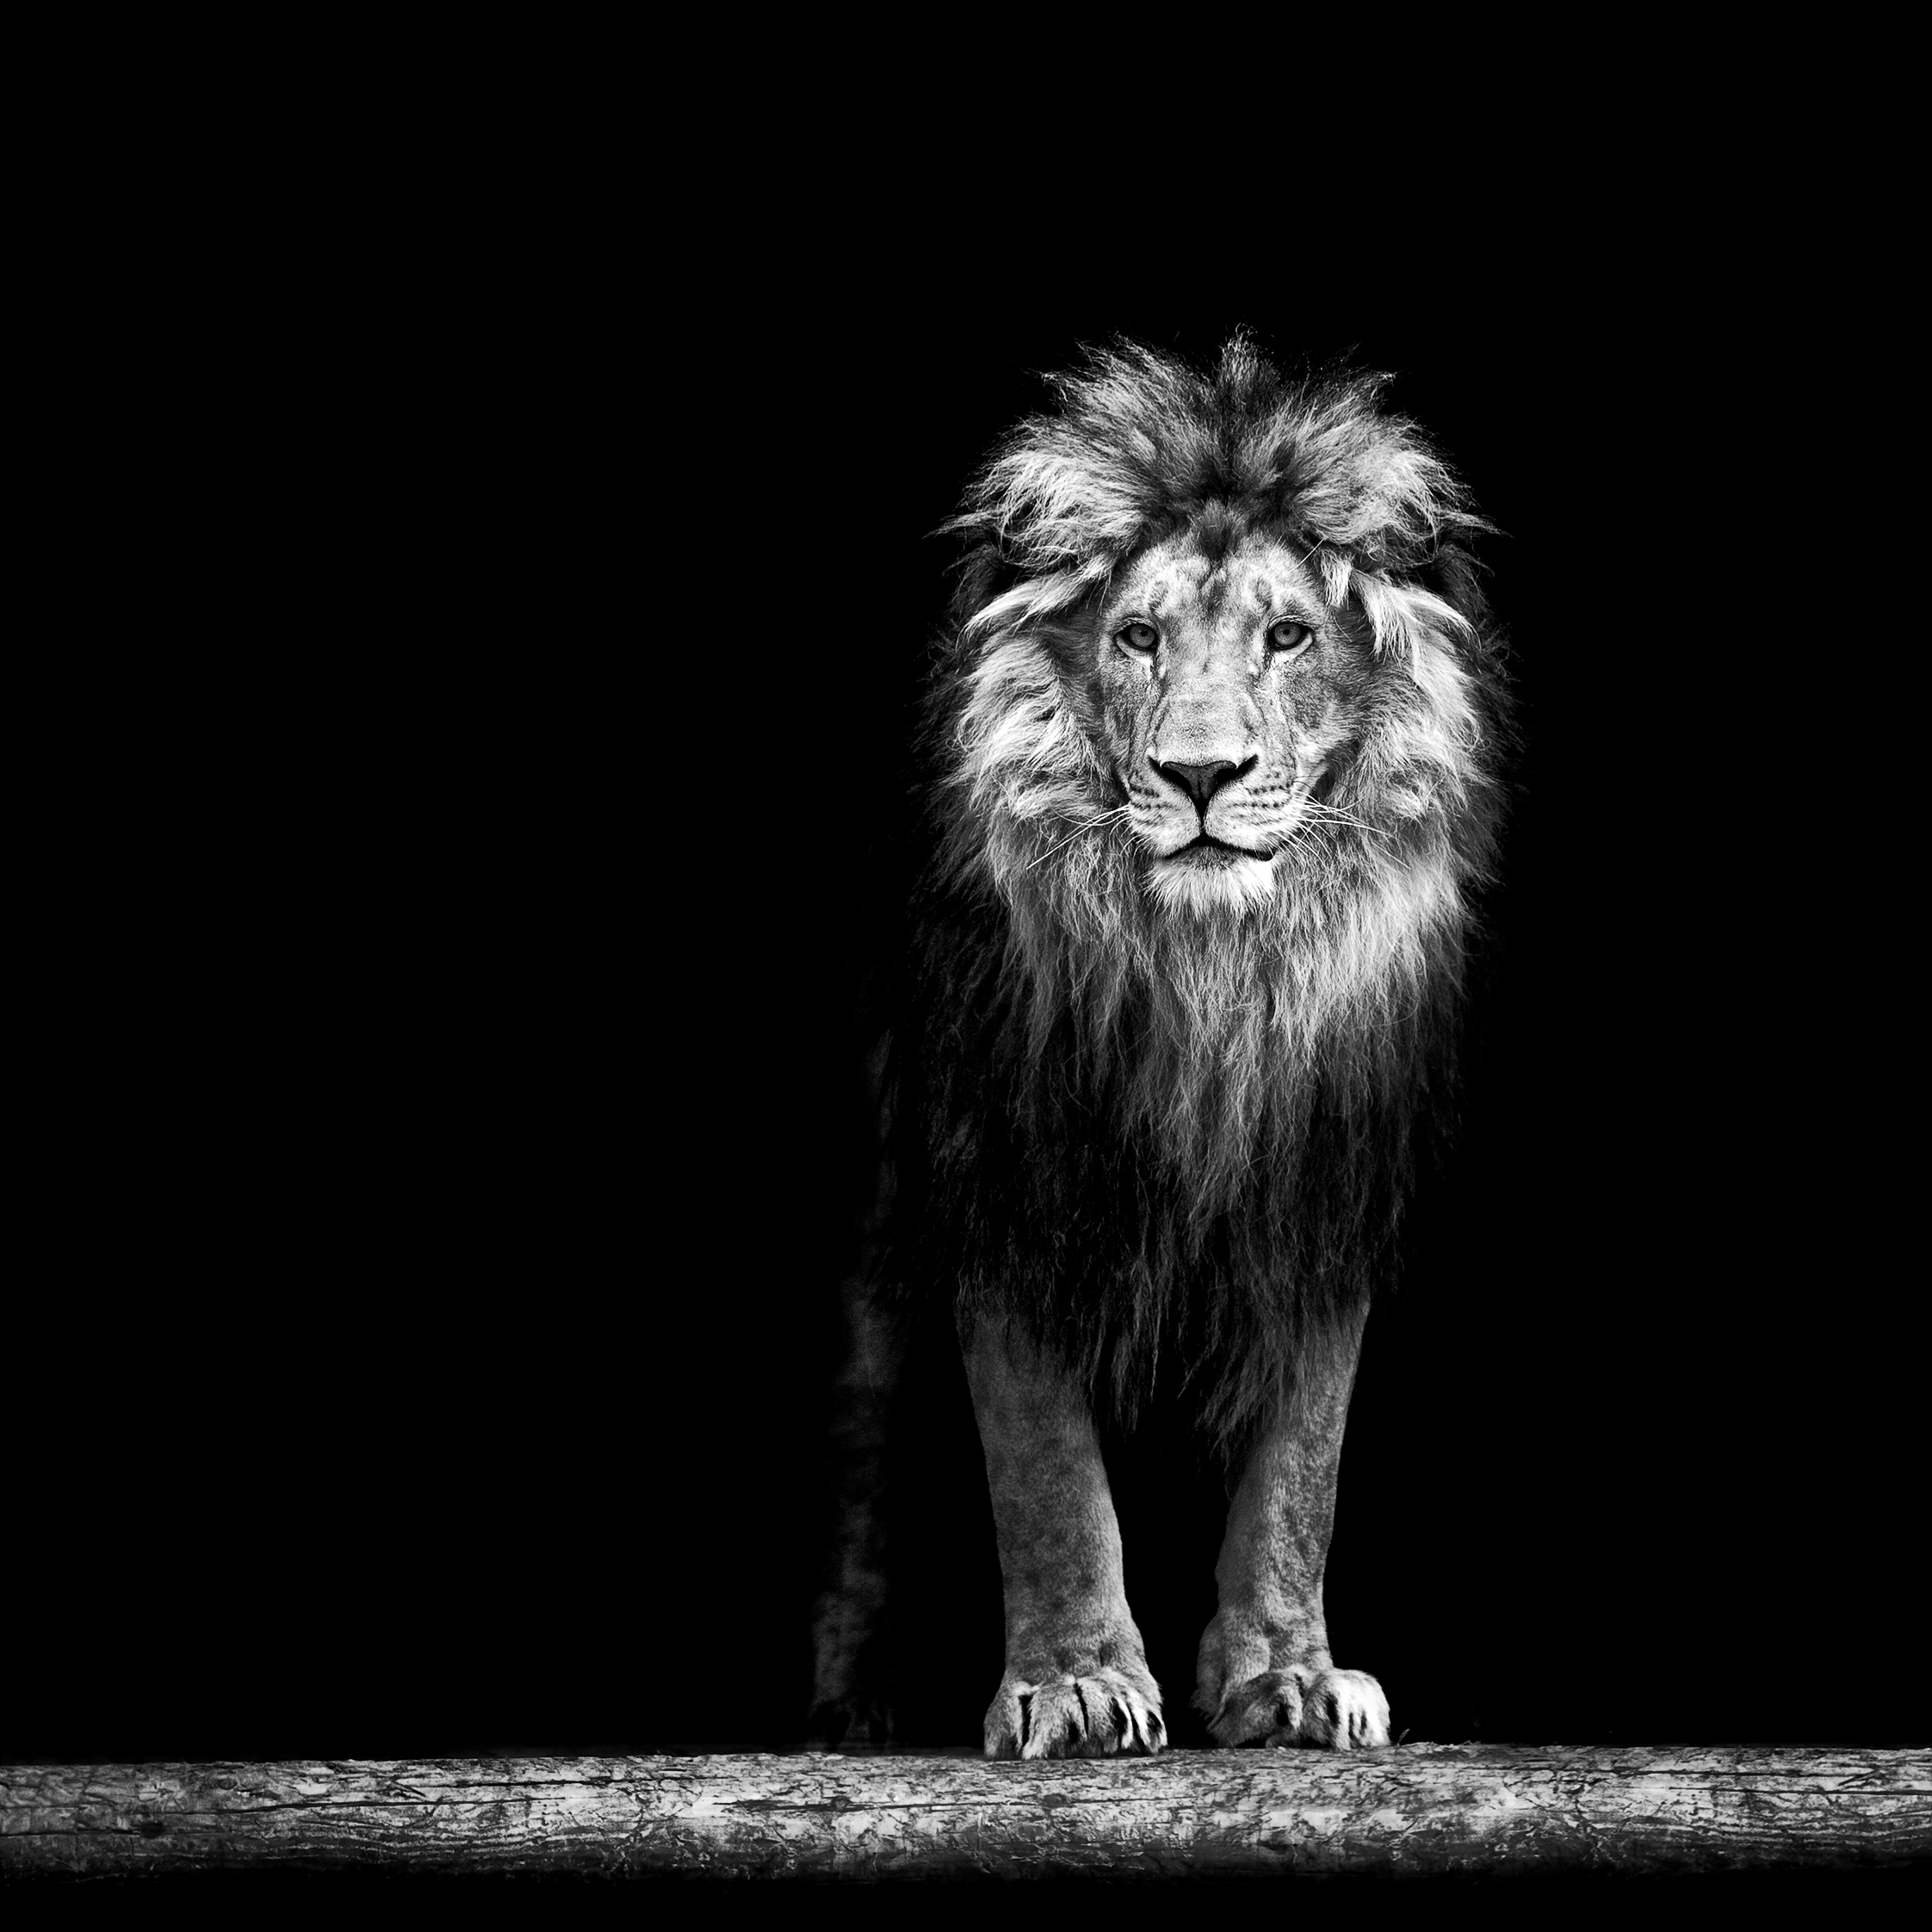 King - How do we teach male lions to shepherd sheep?